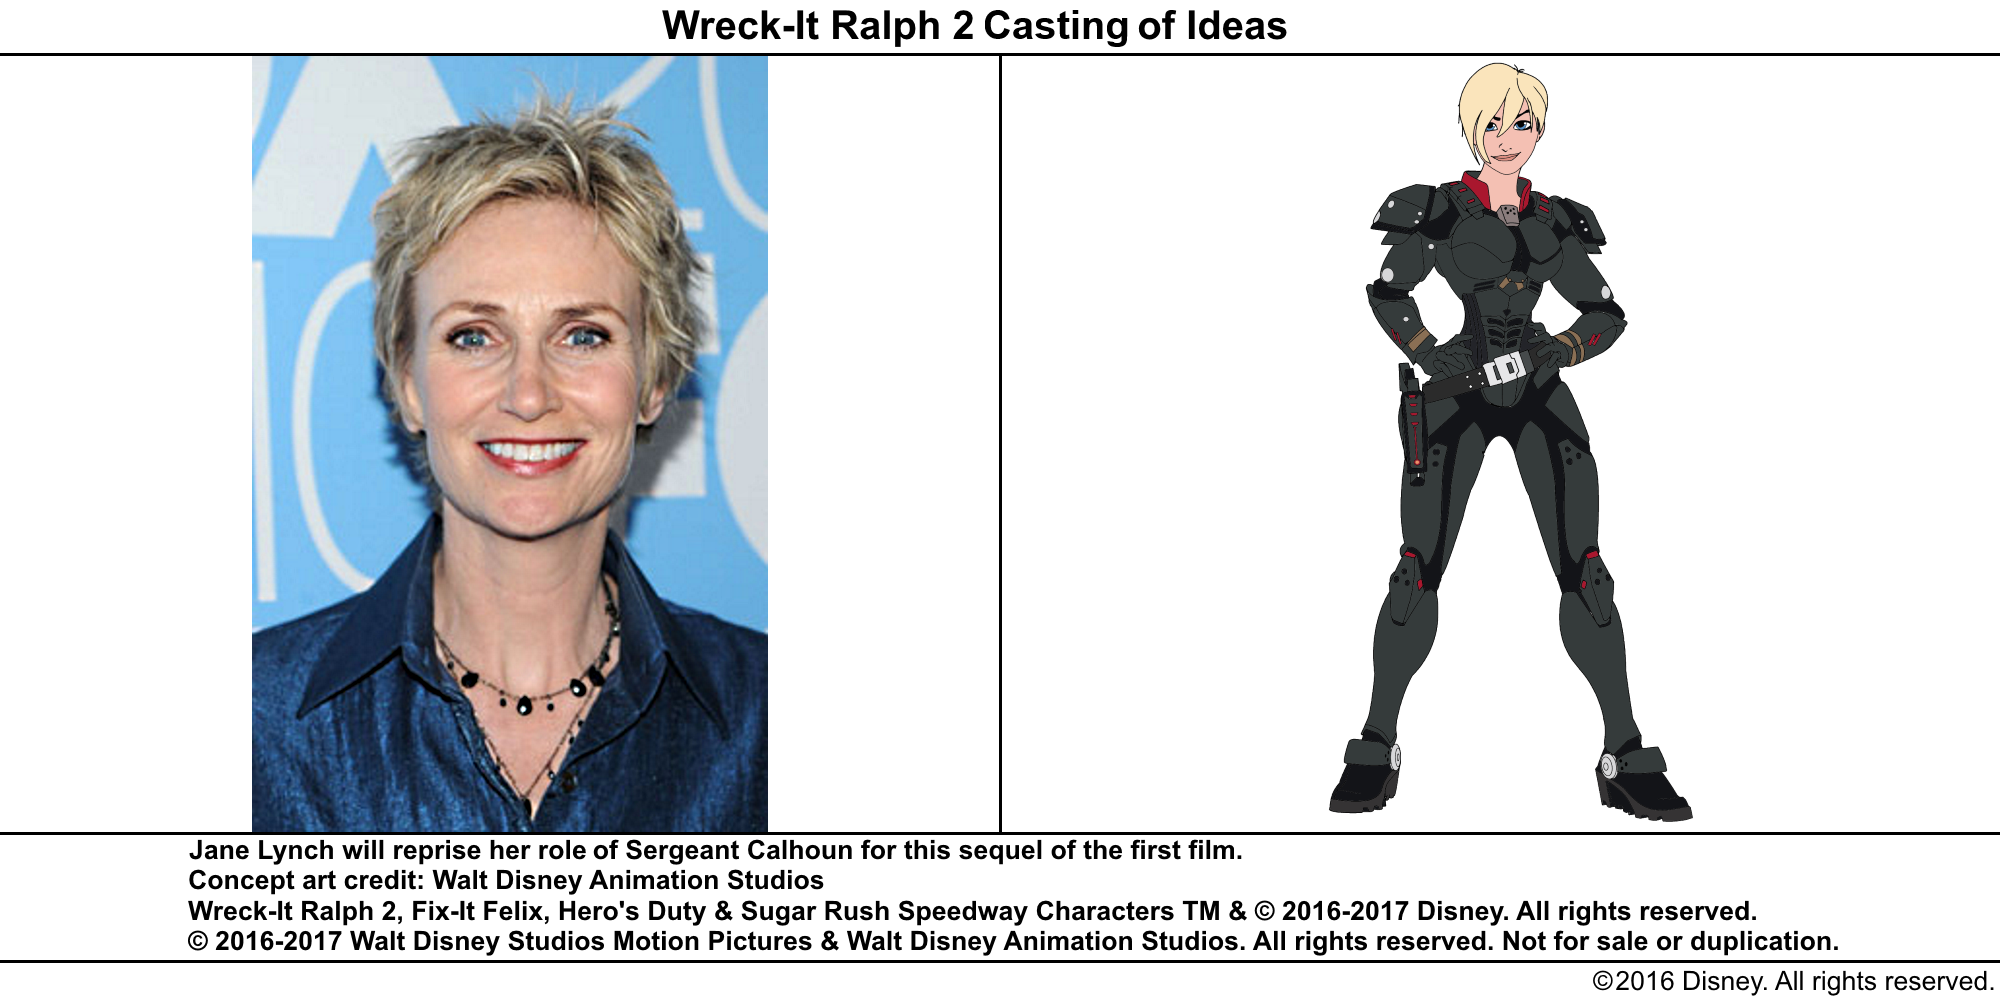 Jane Lynch Images Wreck It Ralph 2 Casting Of Ideas HD Wallpaper And Background Photos